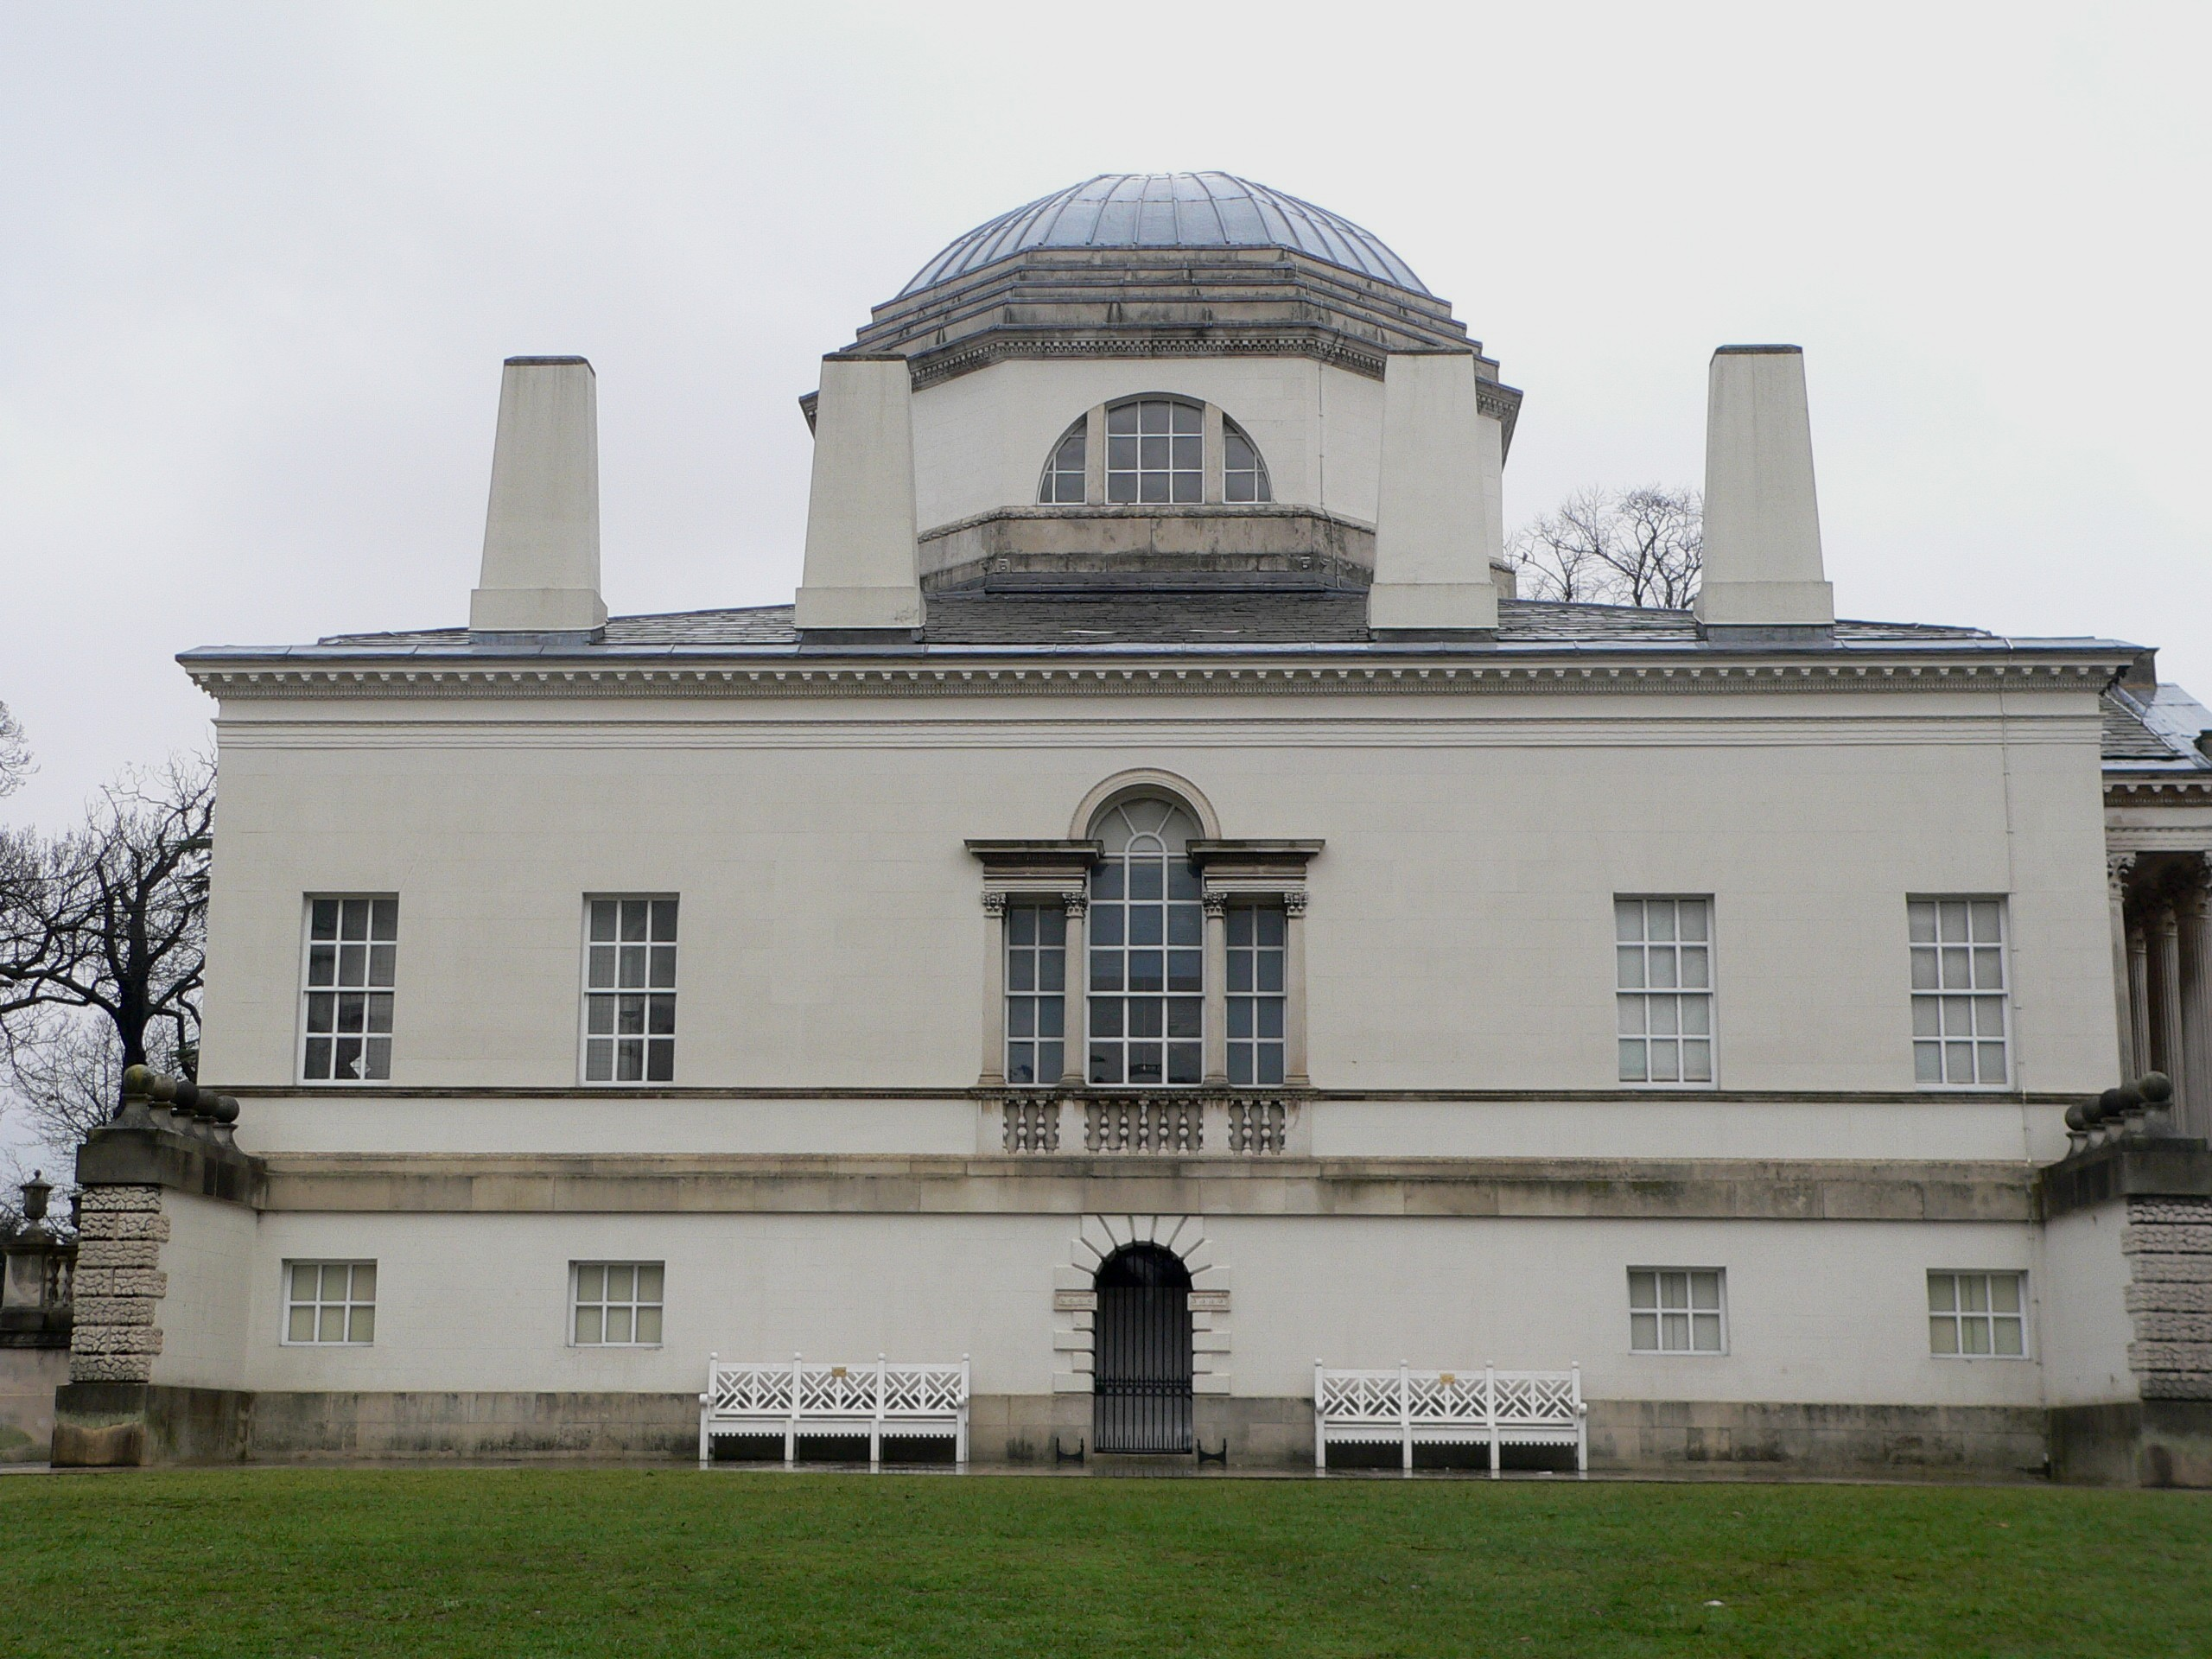 Architecture of Chiswick House - Wikipedia